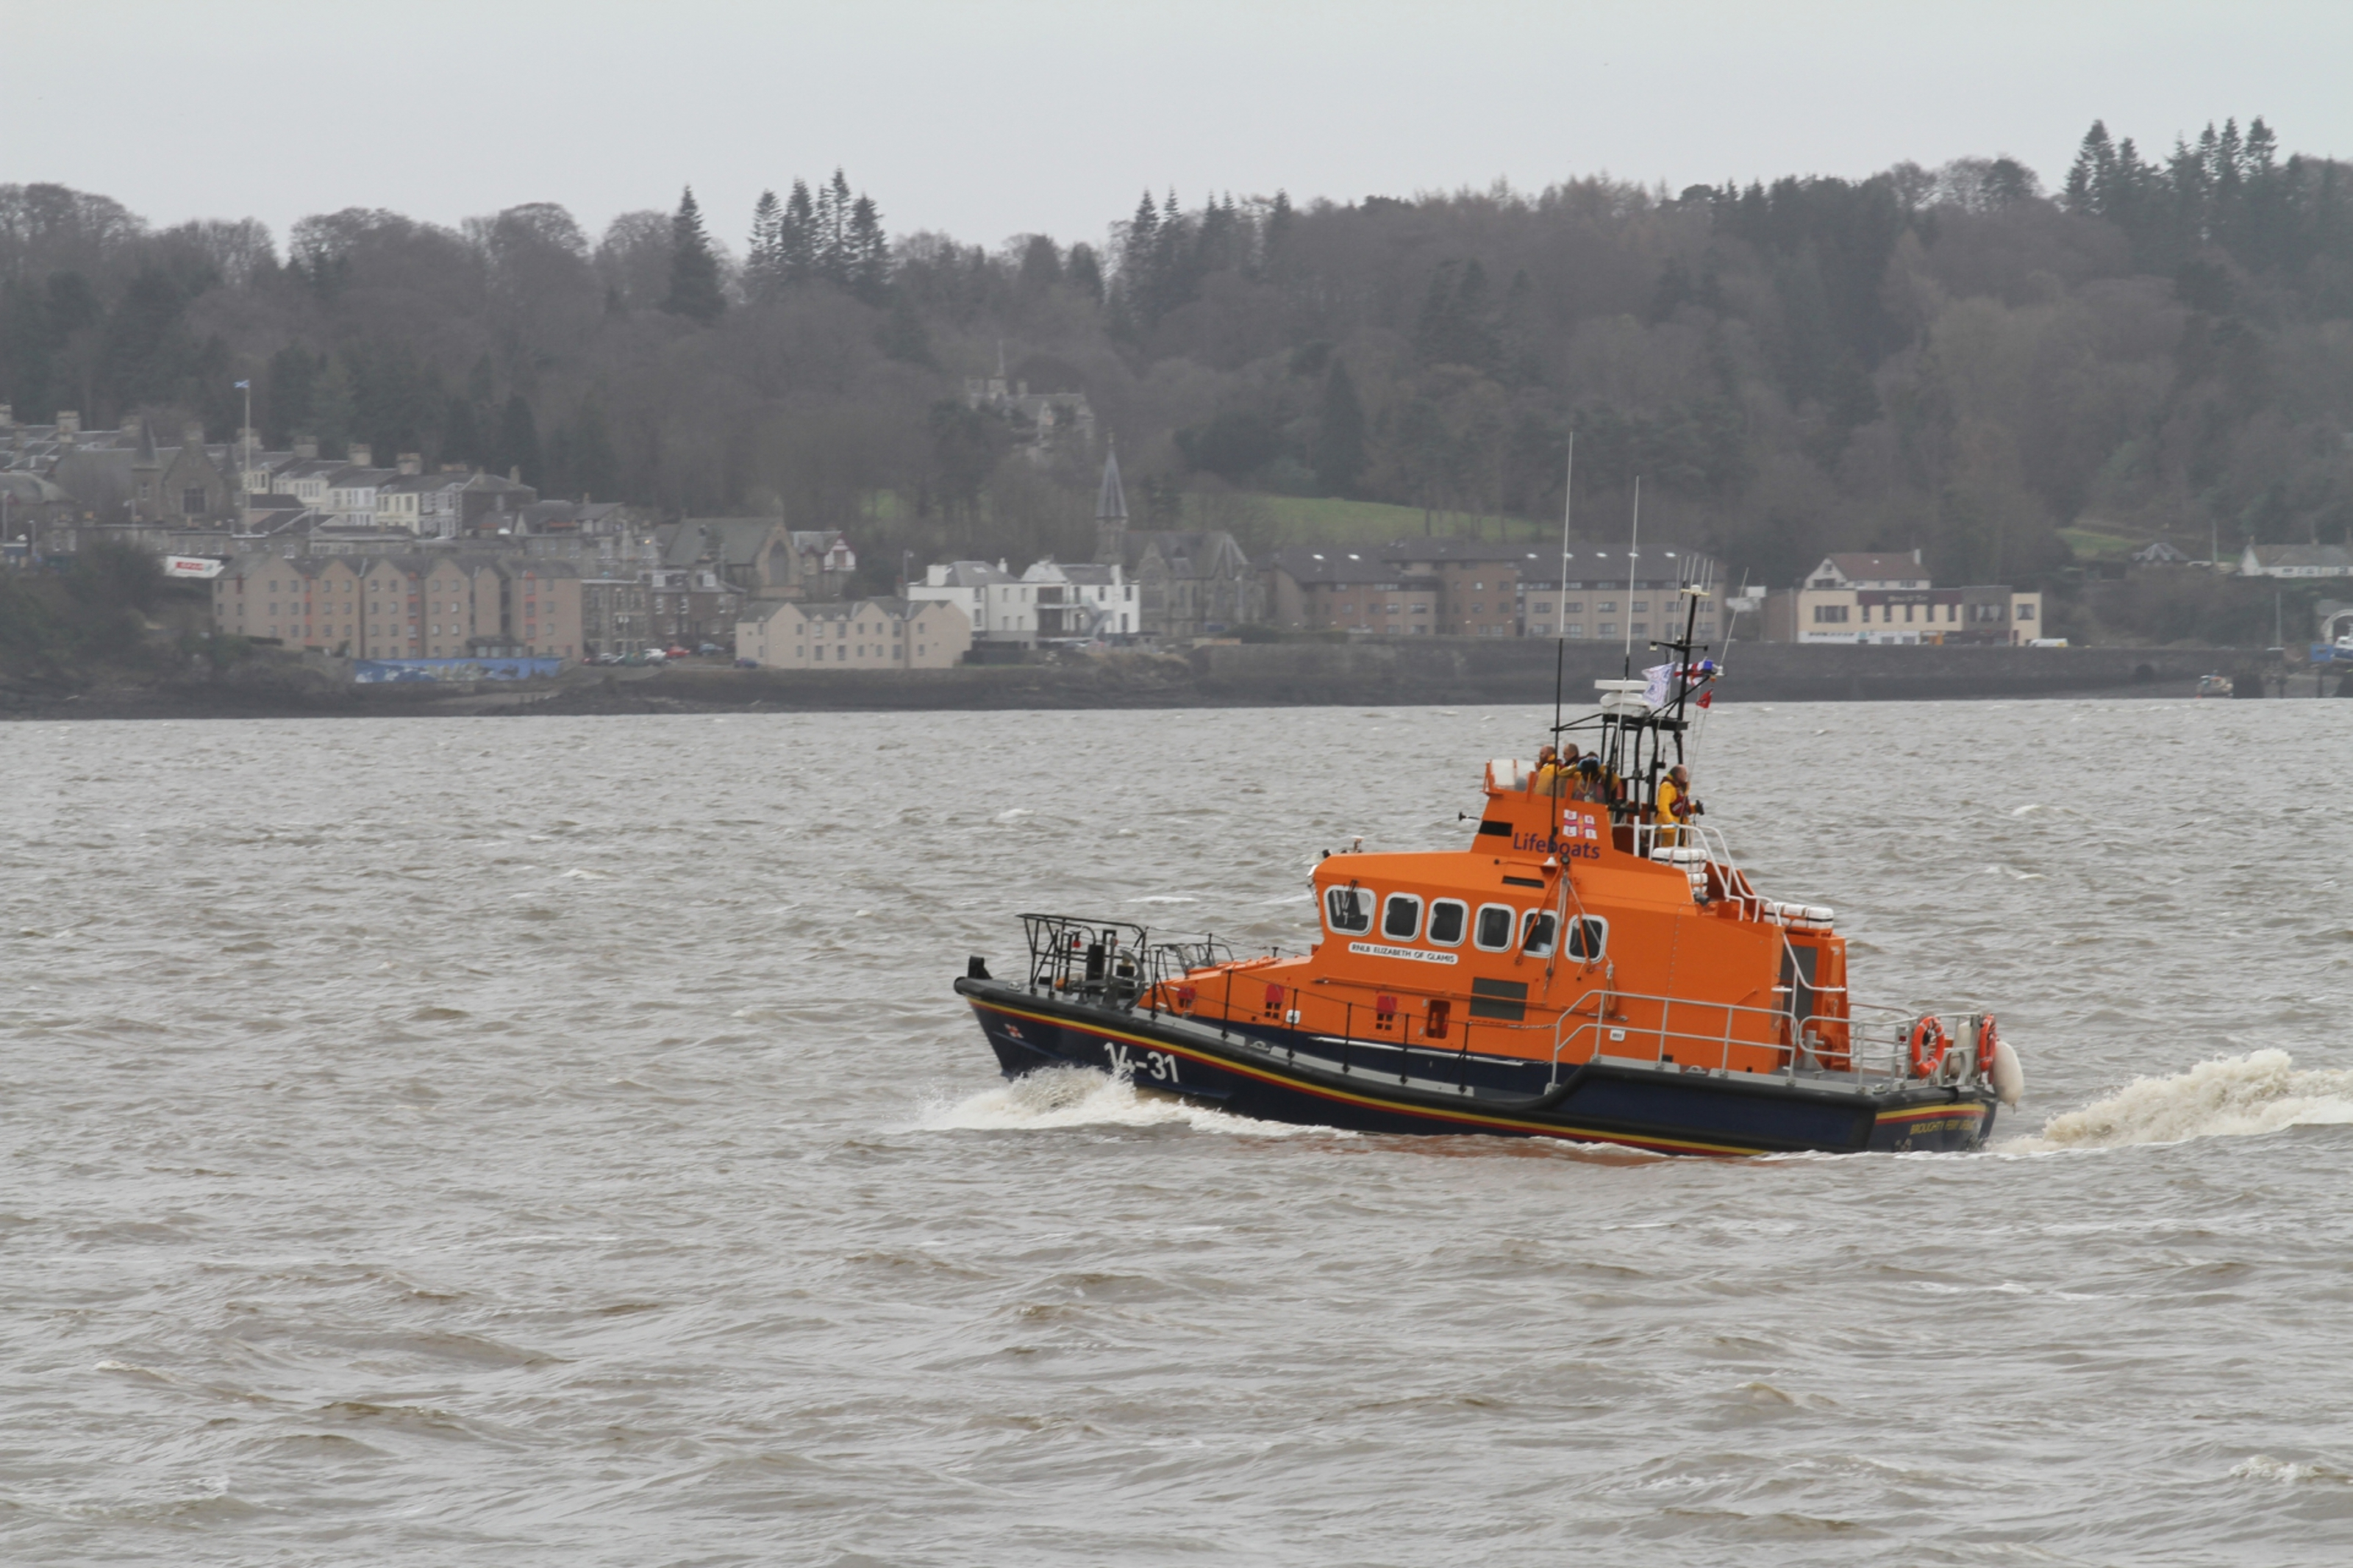 A lifeboat searches the river today